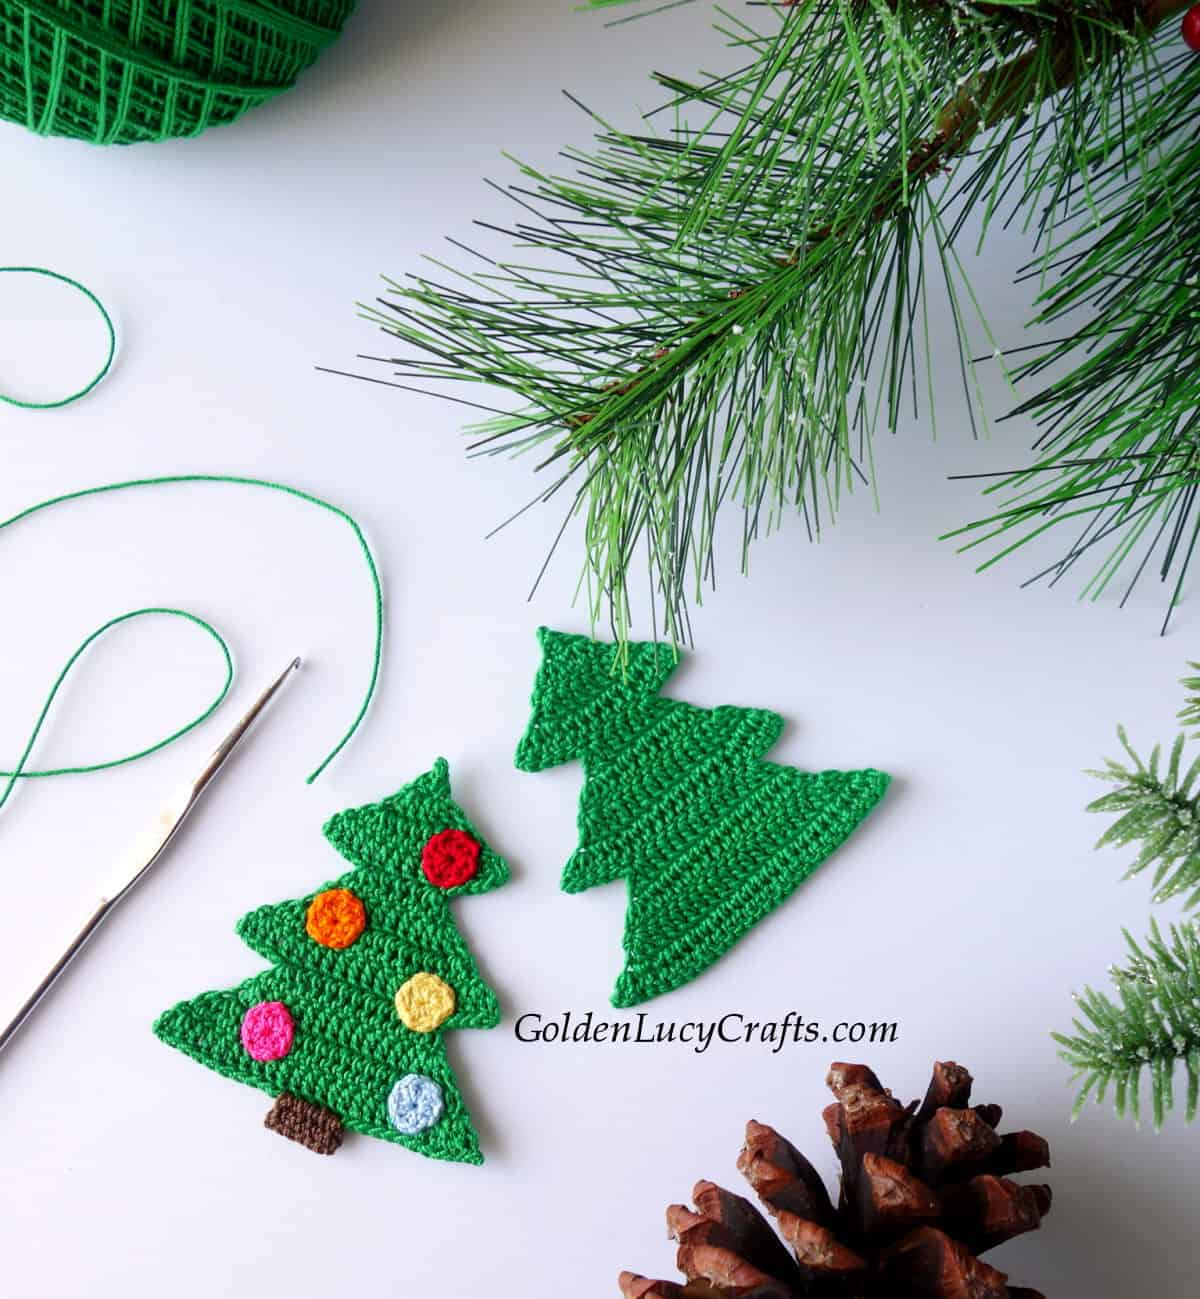 Two green crocheted Christmas tree appliques, crochet hook, green thread, fir tree branch and pine cone.